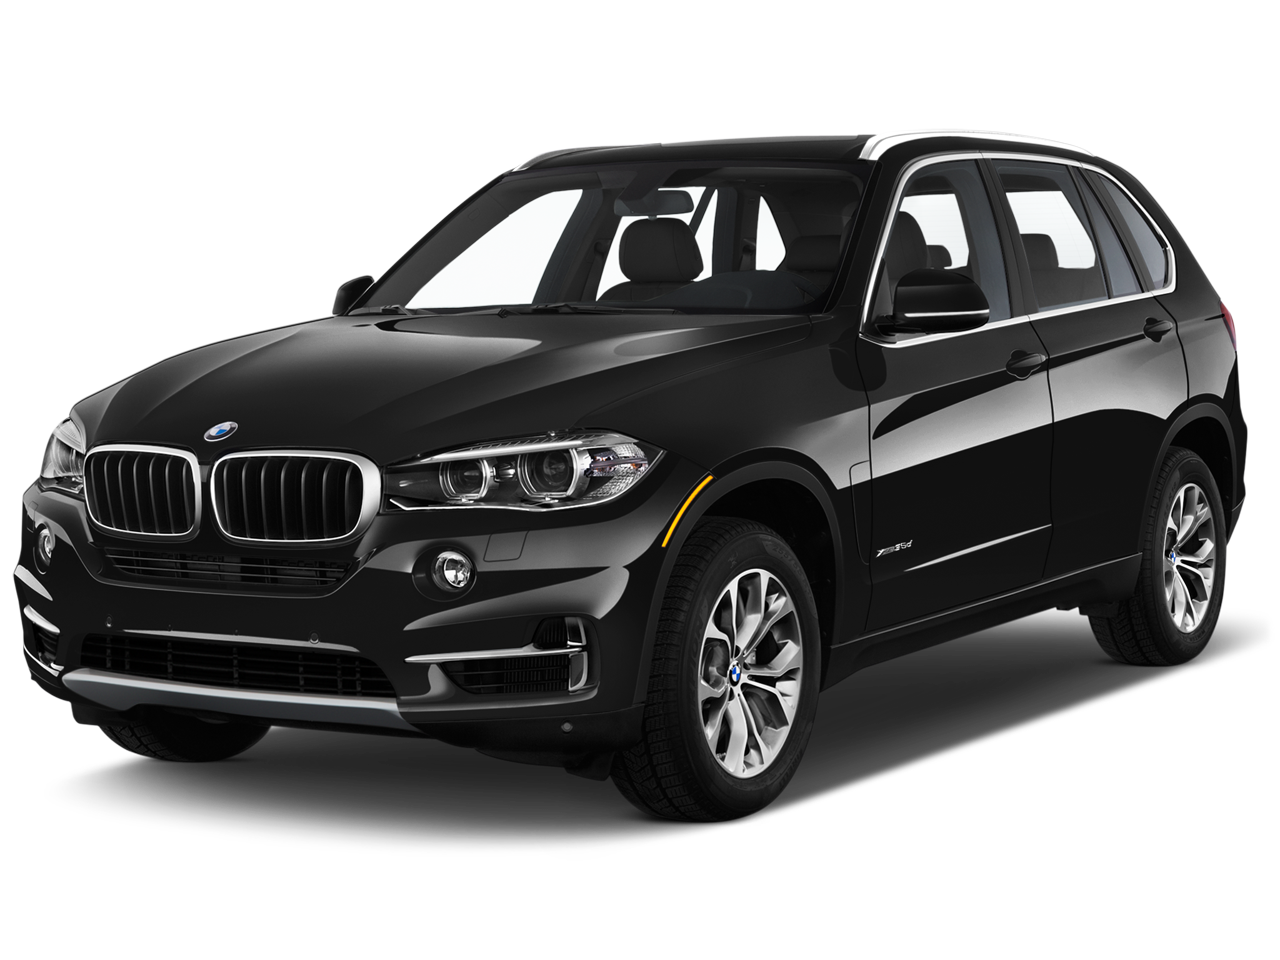 New 2018 Bmw X5 Xdrive35d West Palm Beach Fl Near Coral